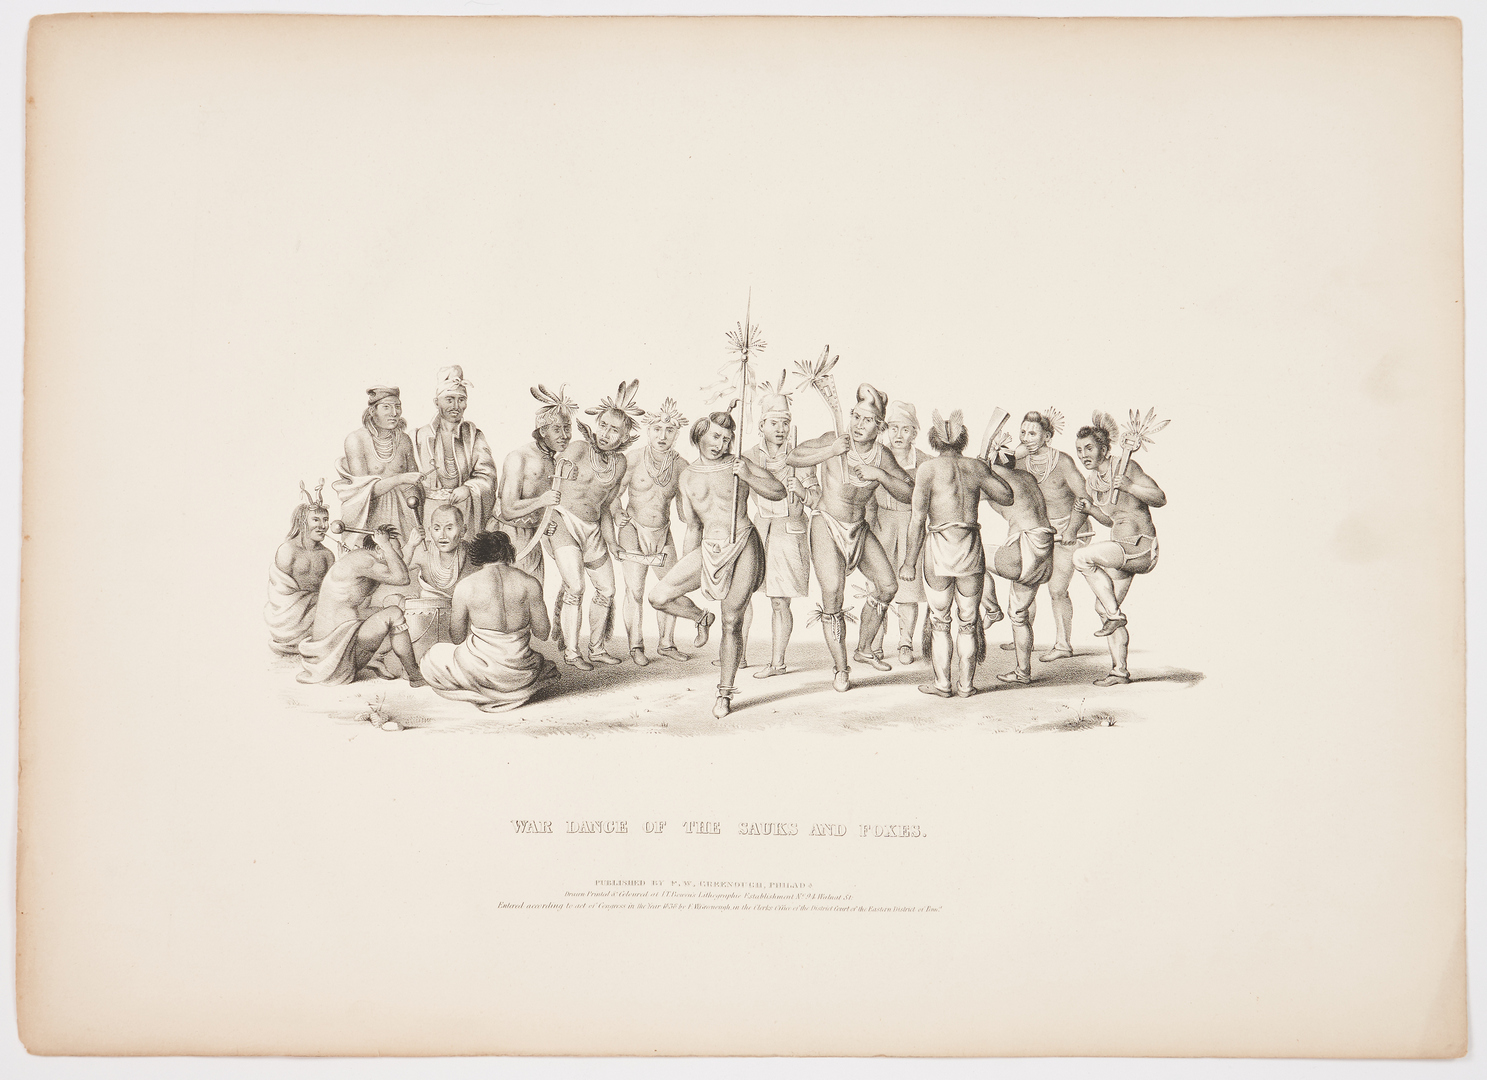 Lot 578: 5 19th C. Lithos. incl. Steamboat Races, Native Americans